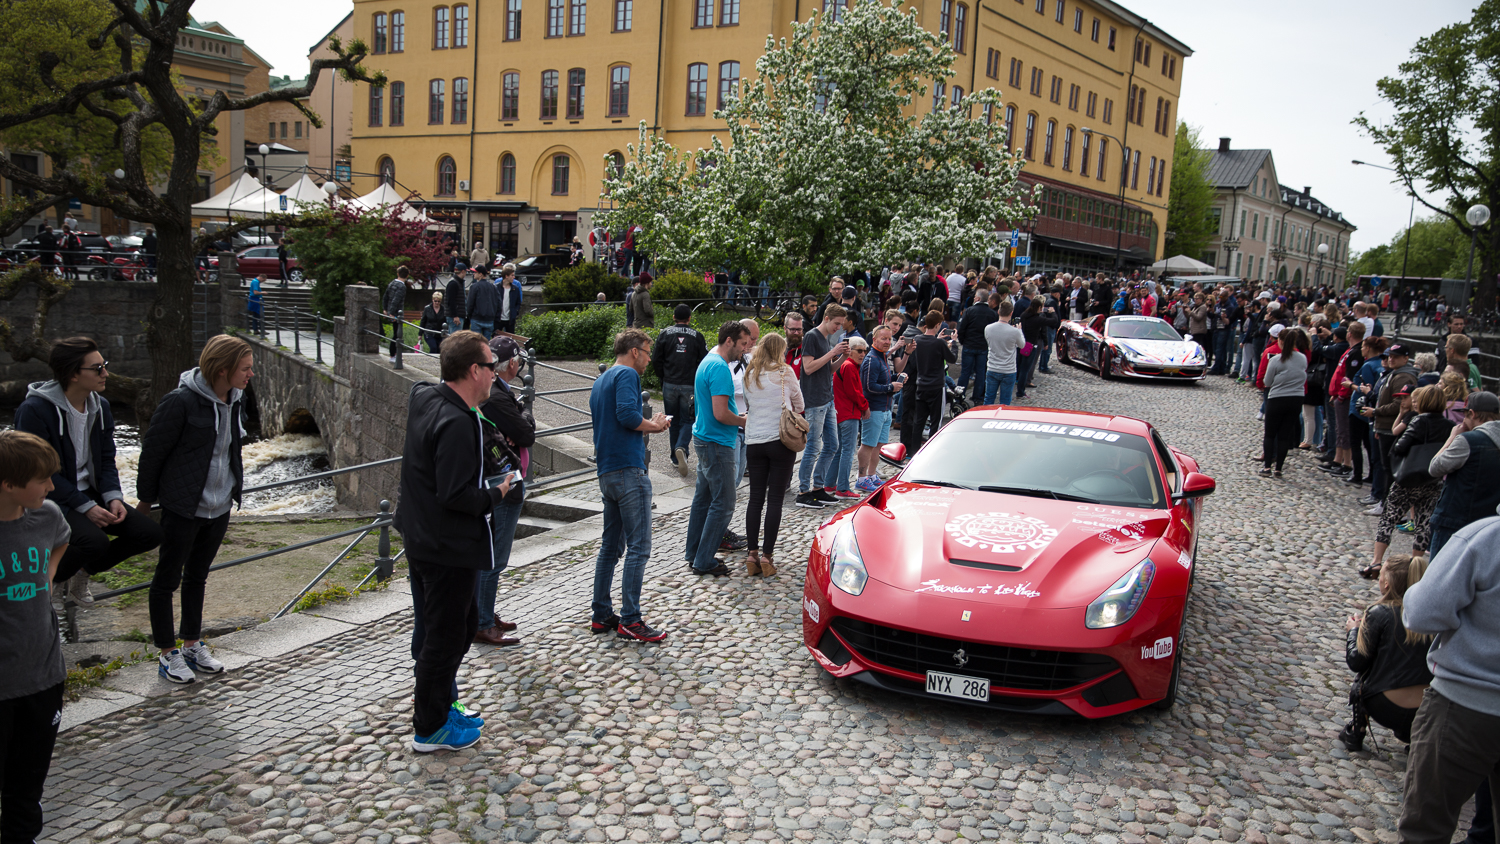 SMoores_15-05-24_Gumball 3000 Day 1_0930-Edit.jpg